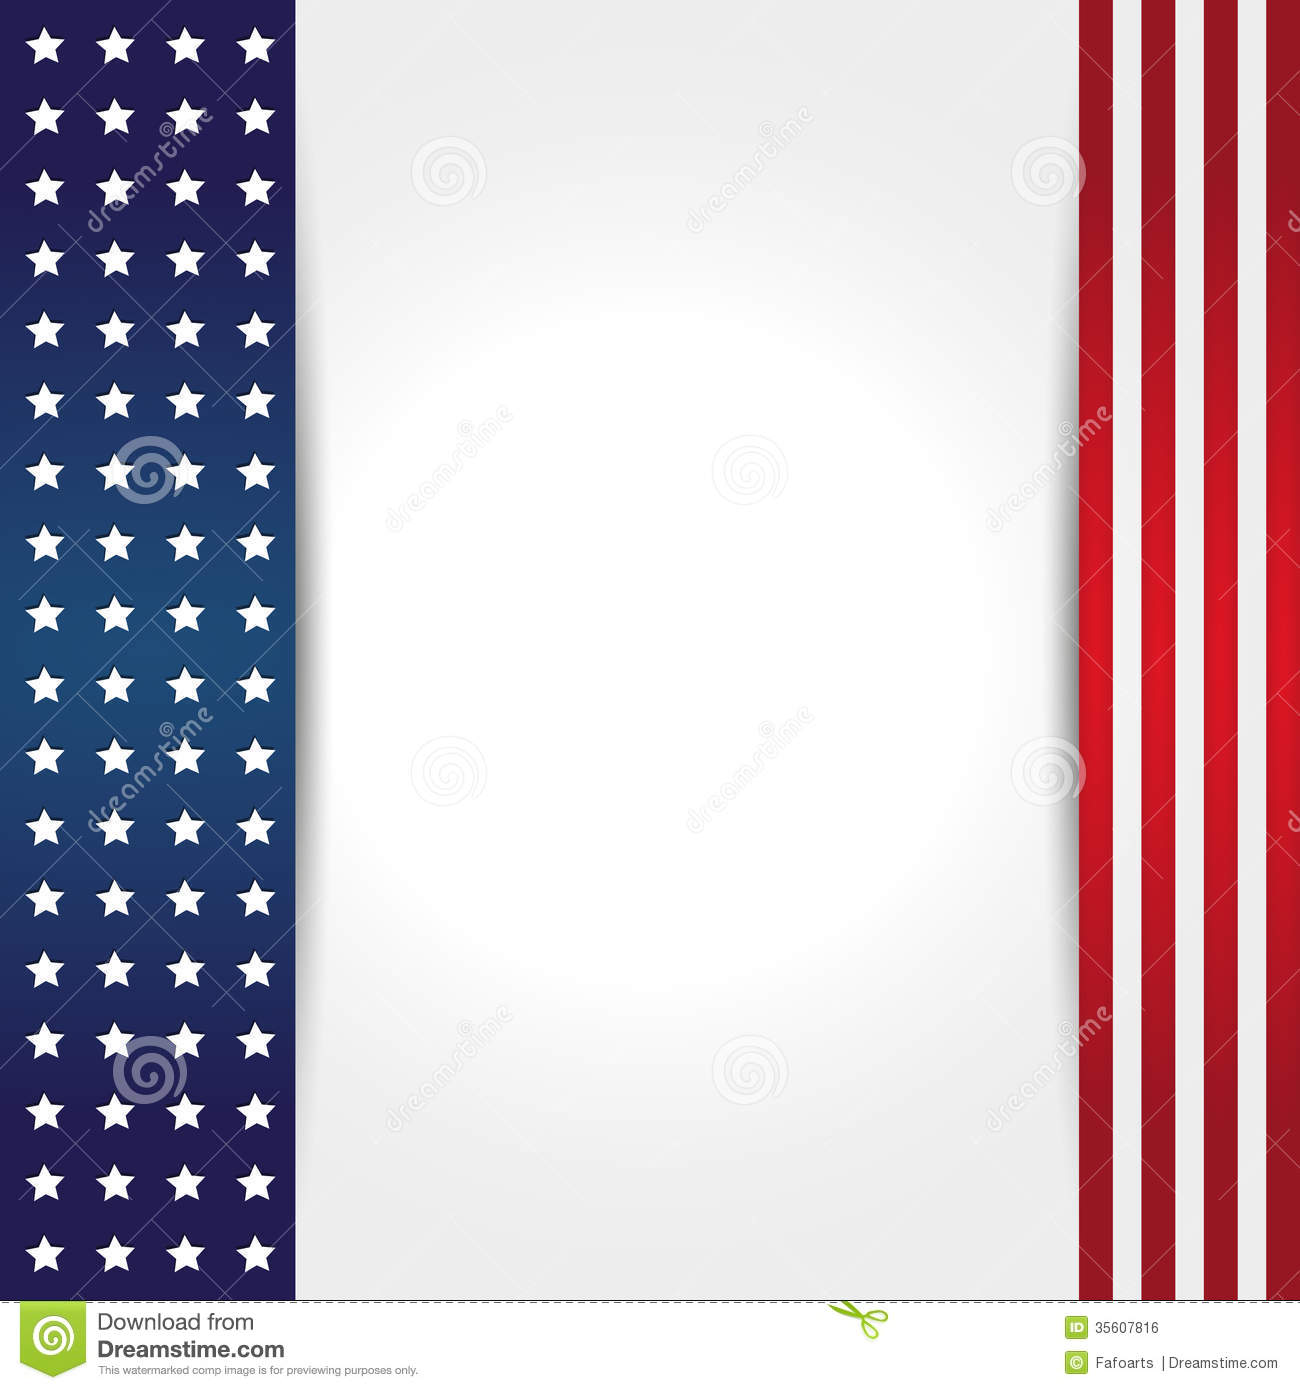 american flag background stock vector illustration of patriotic